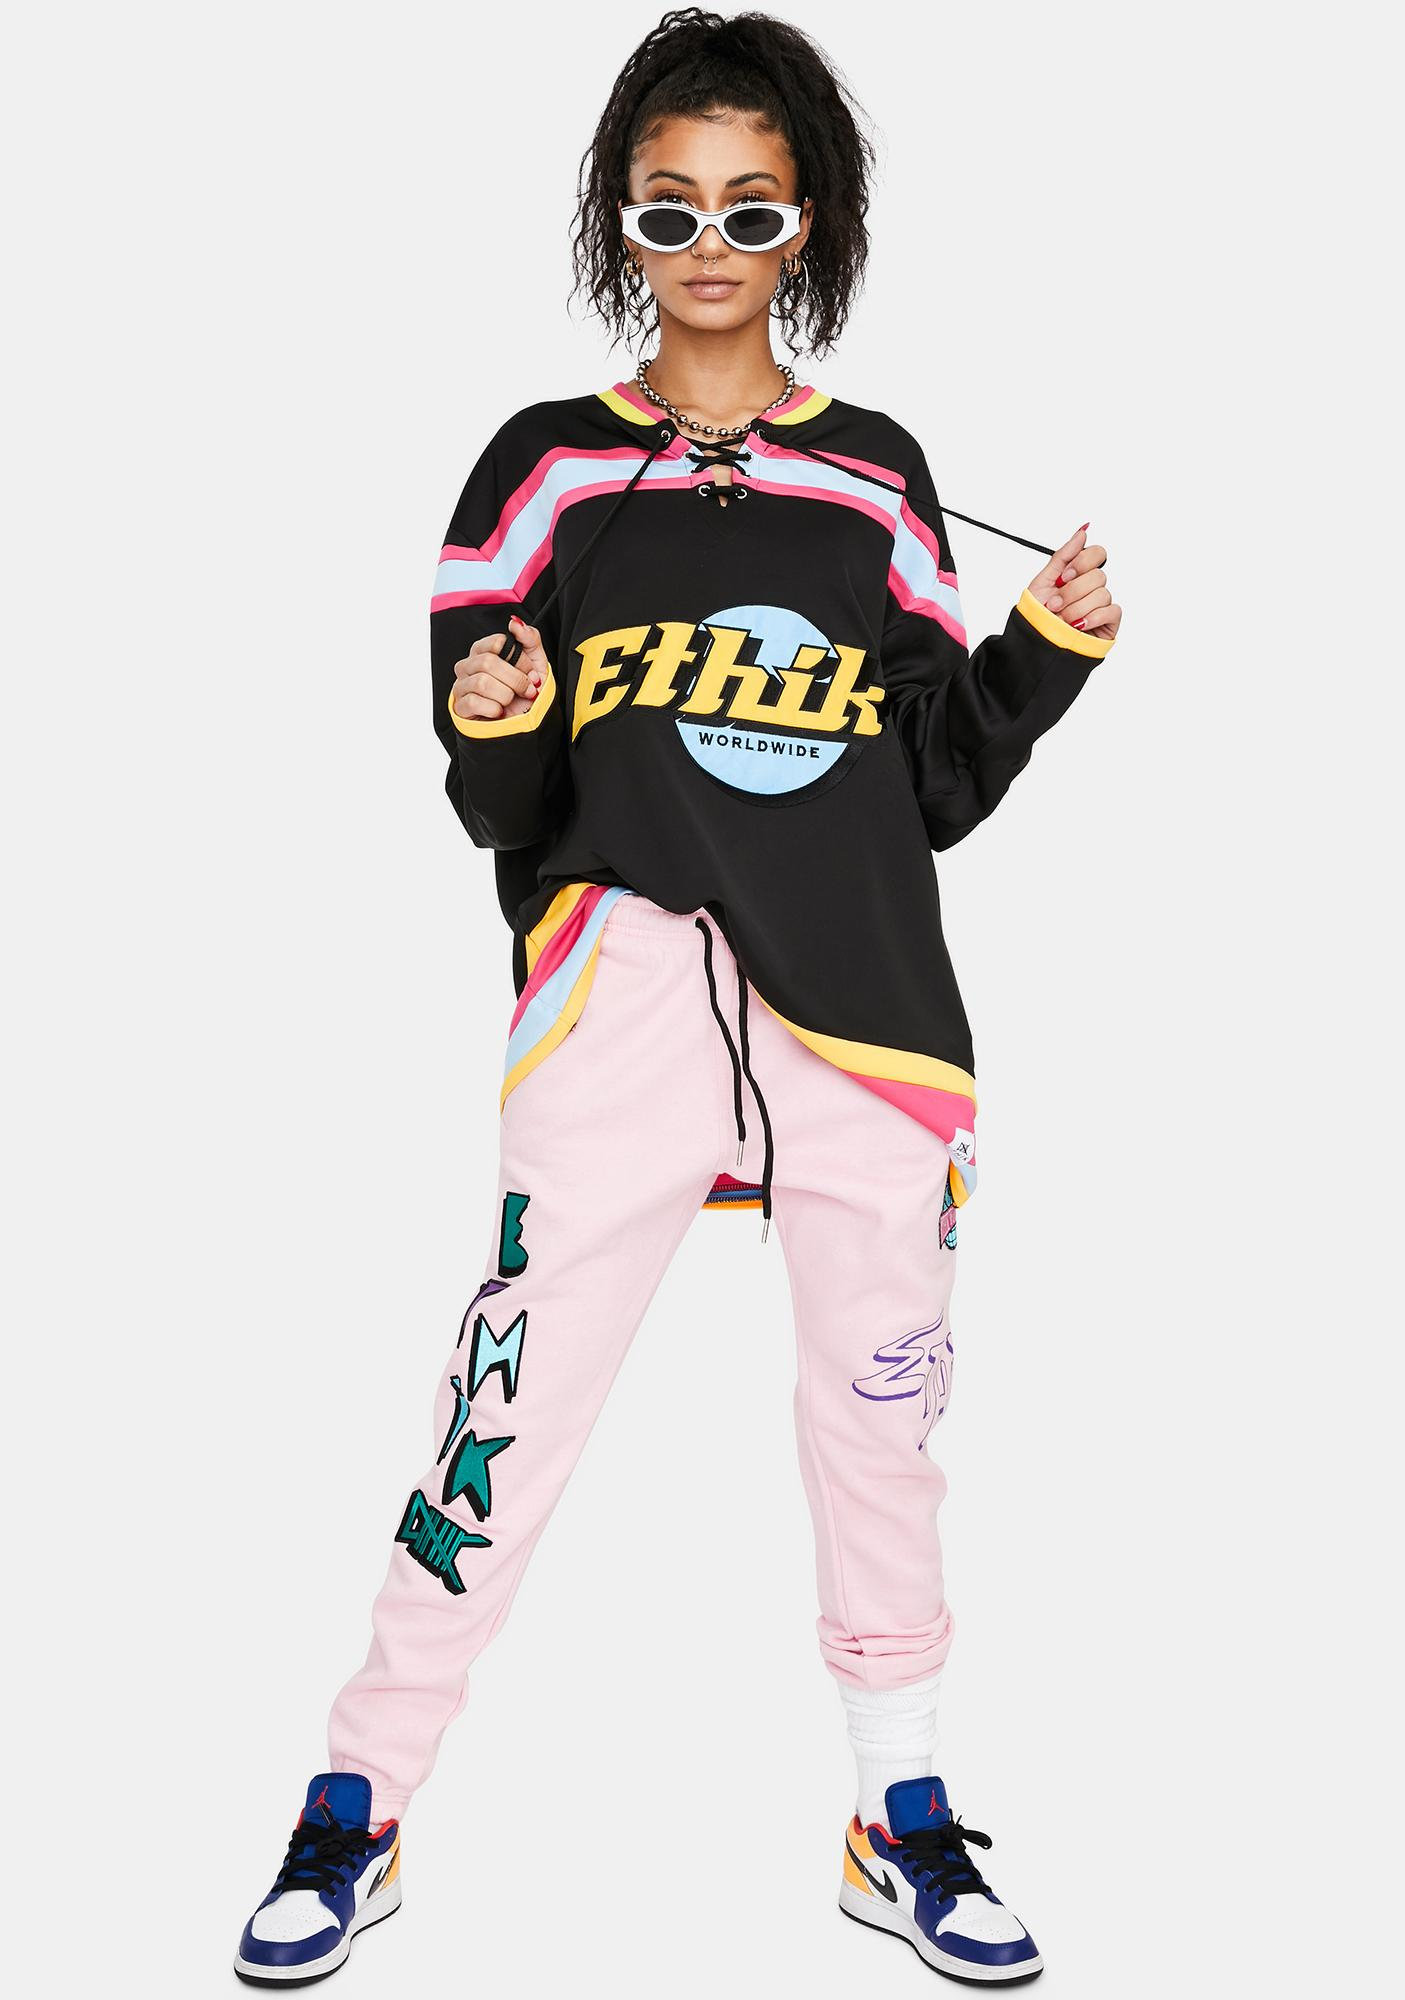 ETHIK Black Mavericks Hockey Jersey